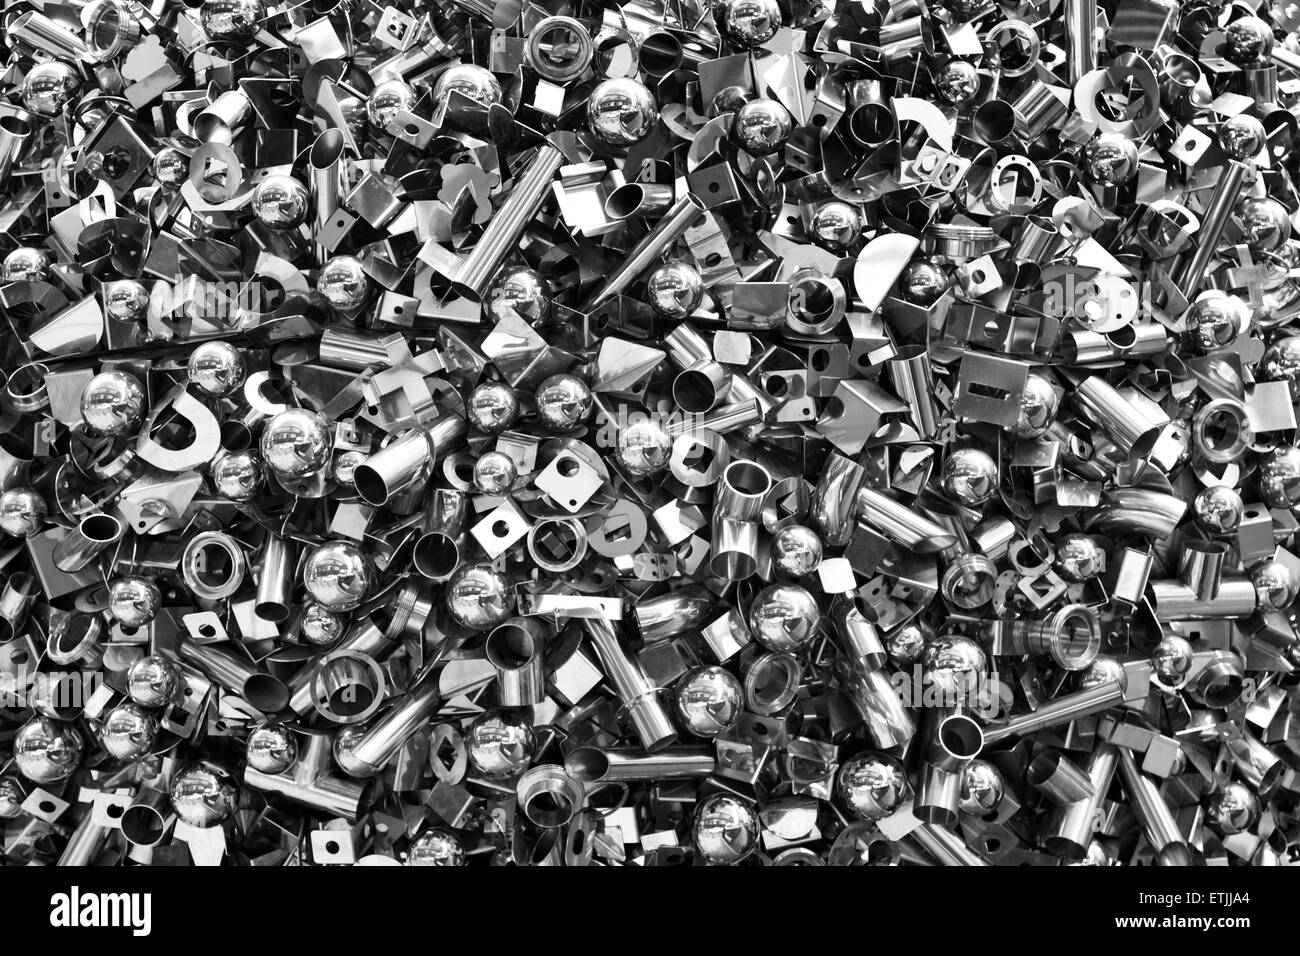 Detail from a sculptural piece made up of nuts, bots and screws, on display outside 30 St. Mary Axe, London, England - Stock Image